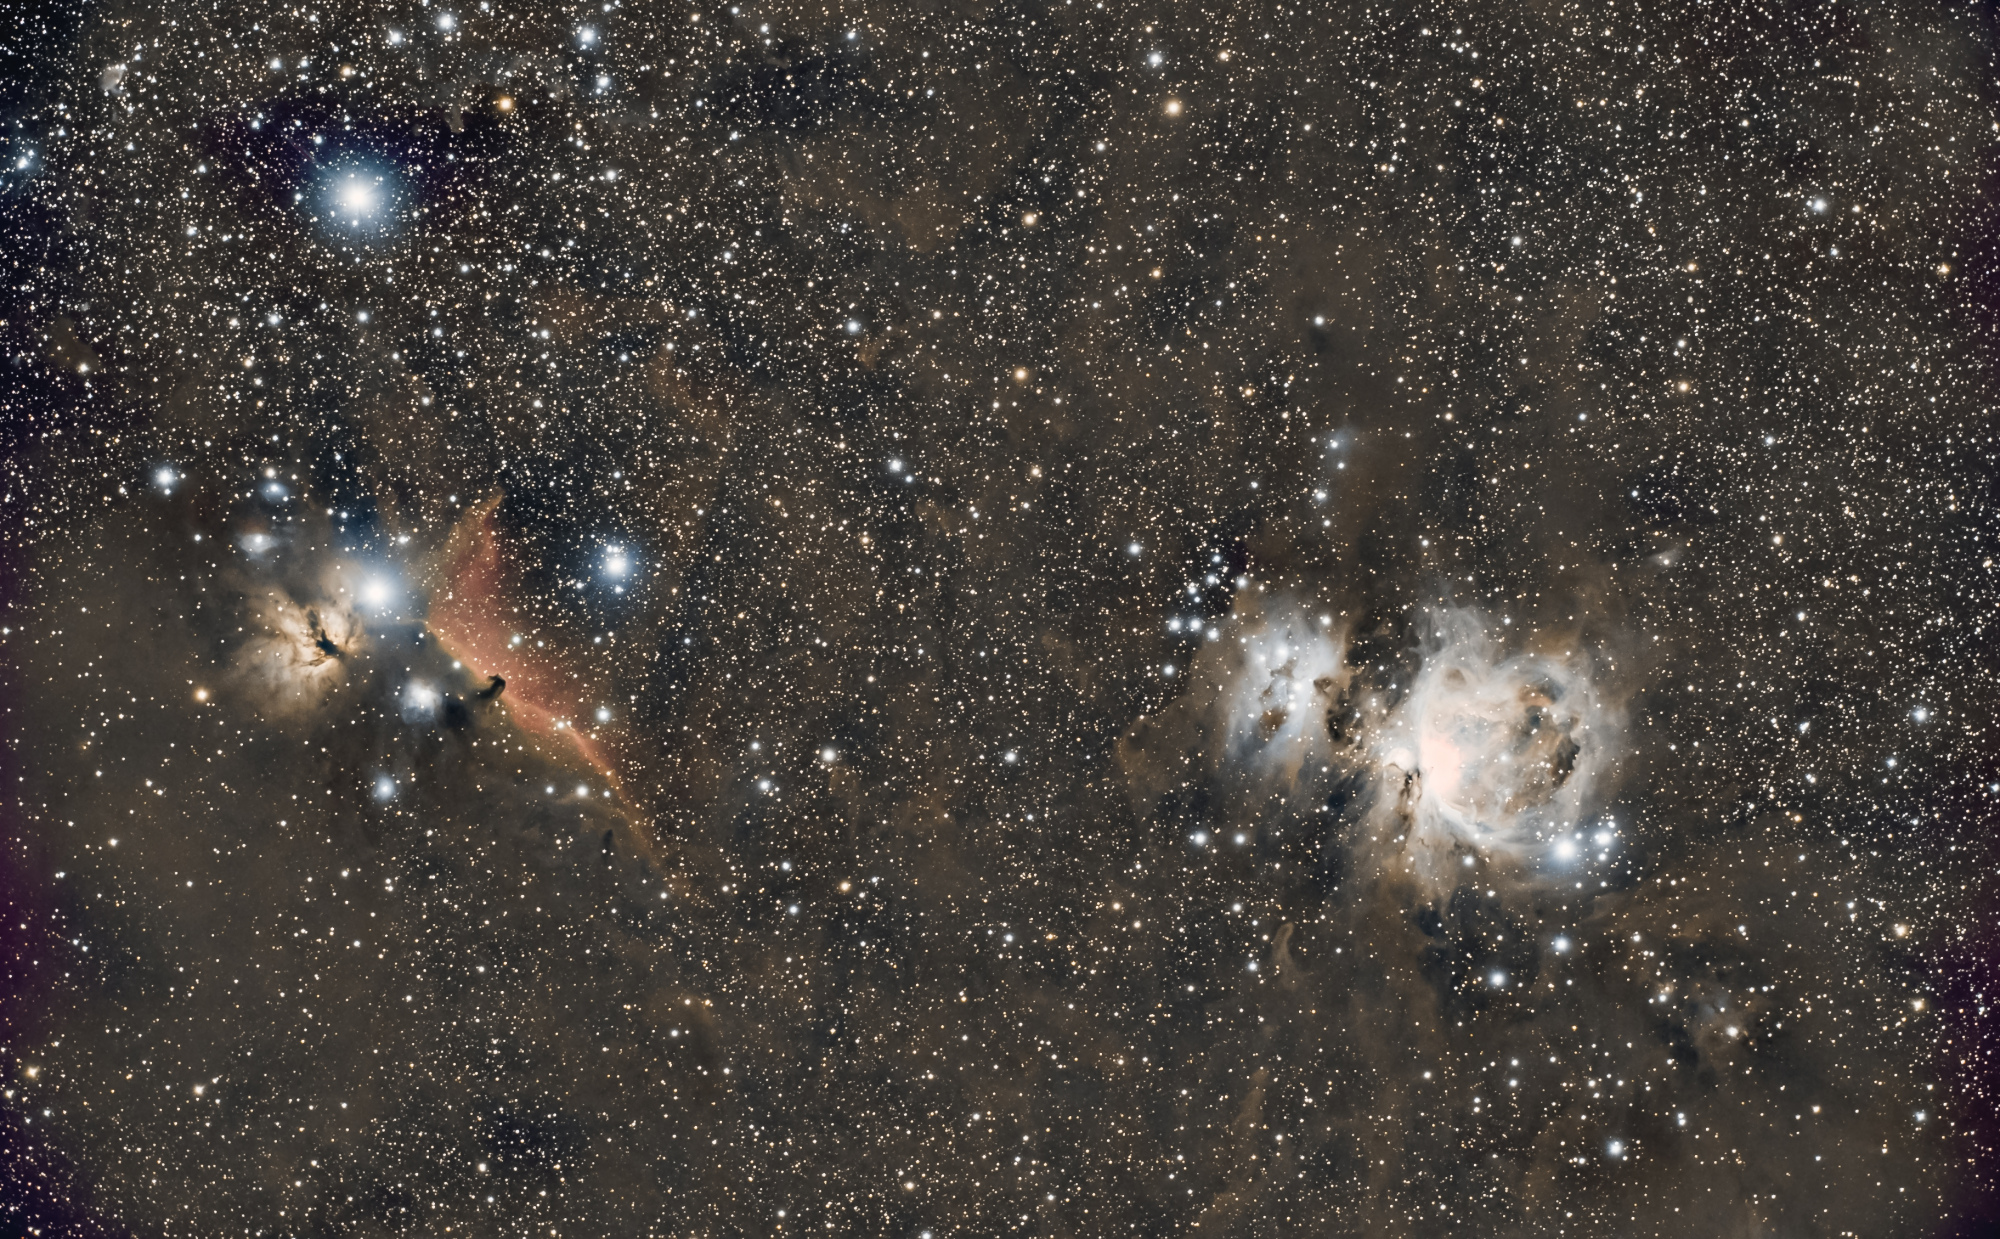 orion_fs60red.thumb.jpg.50f535781a21f6a632bbbef494a79981.jpg